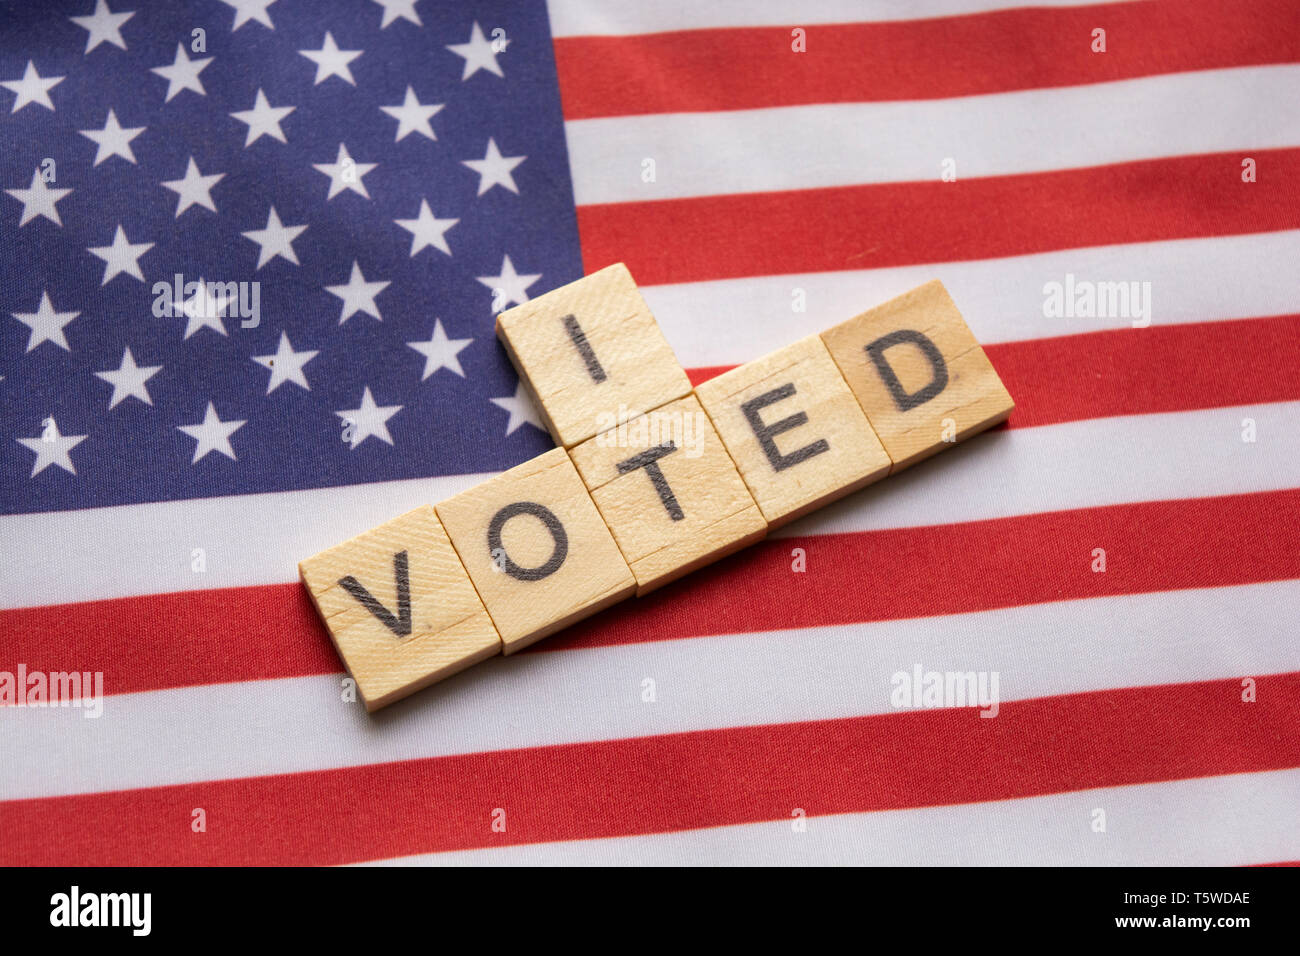 Maski, India 26, April 2019 : I voted wooden block letters,US elections on American flag. Stock Photo